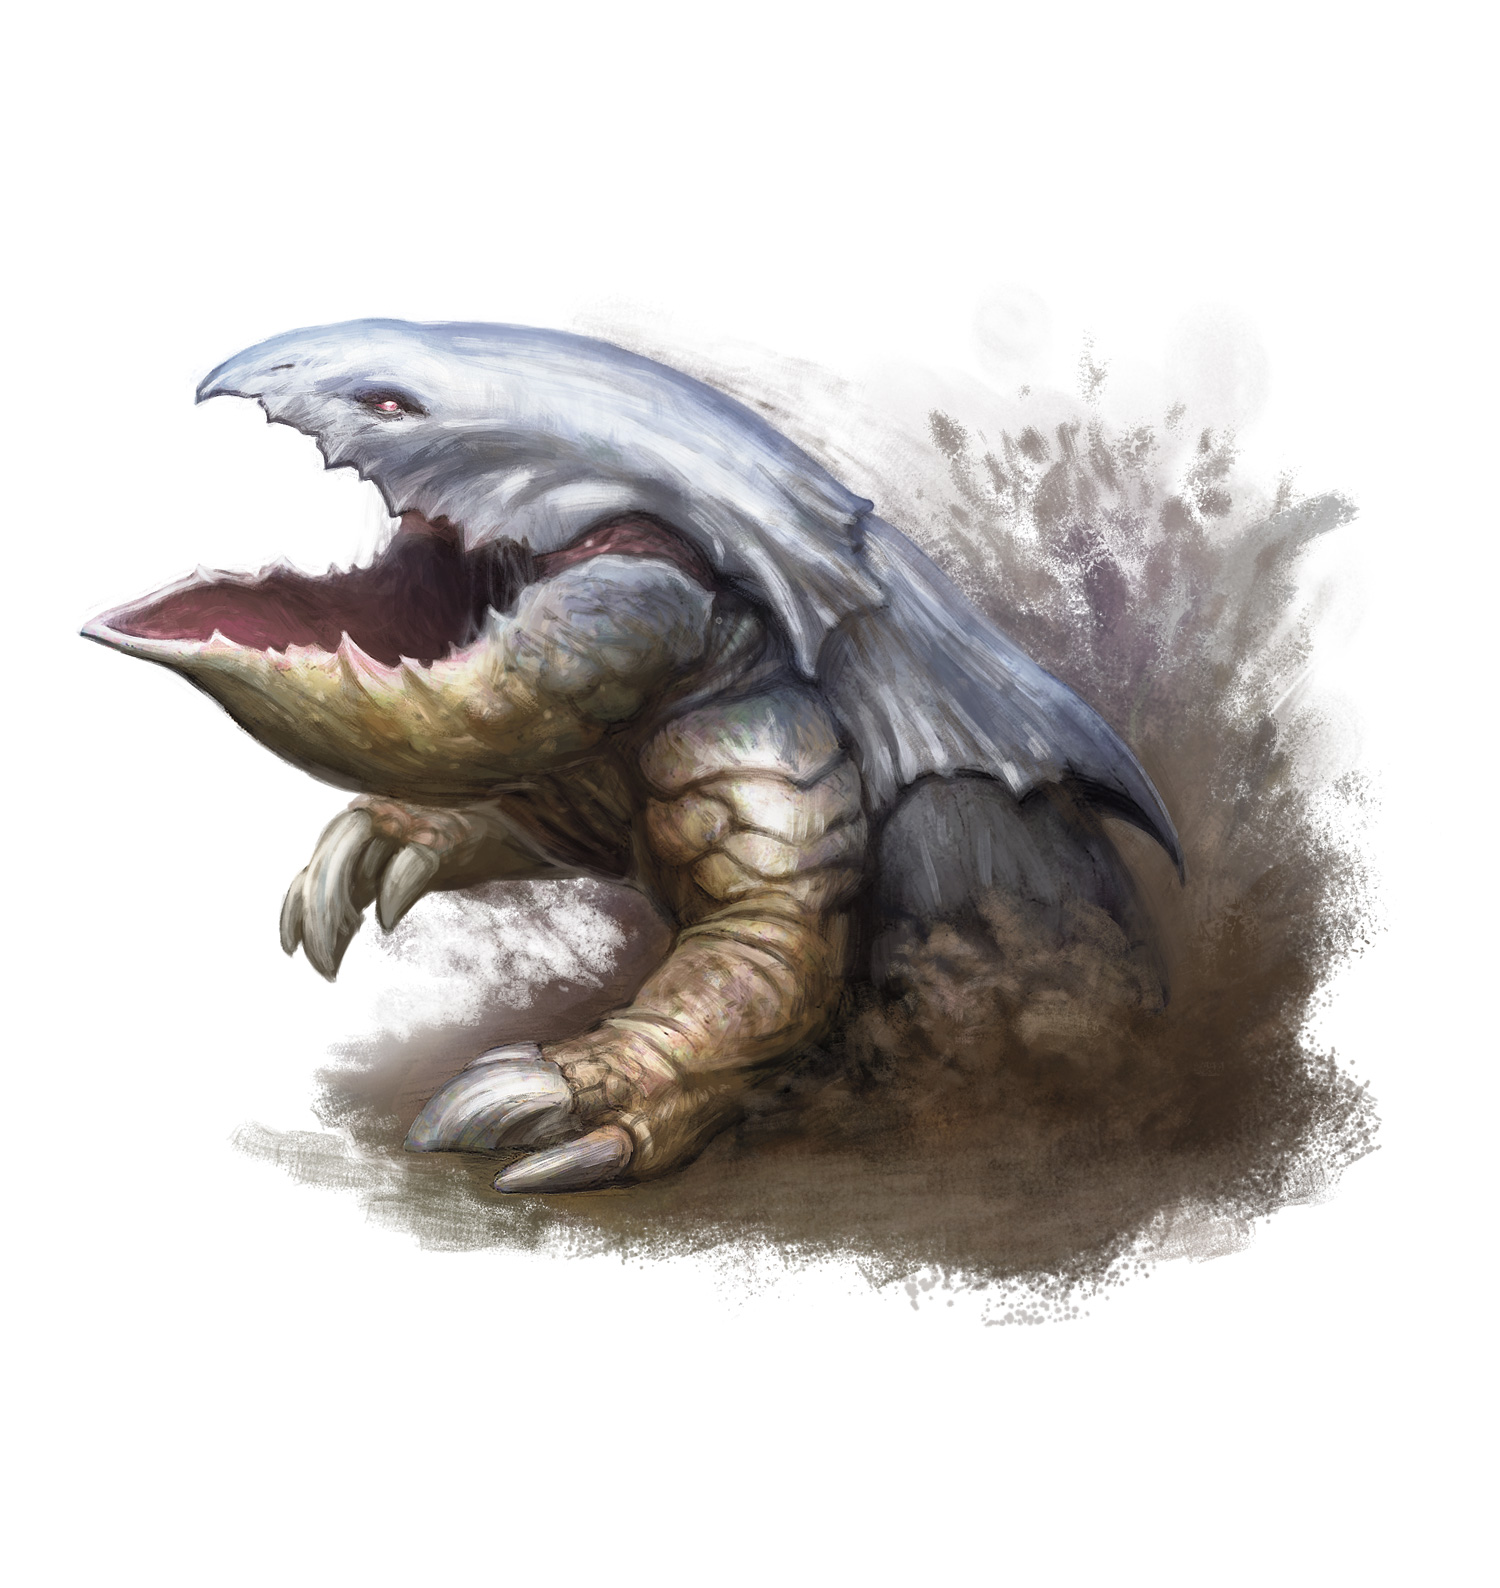 Monster_Manual_5e_-_Bulette_-_p34.jpg